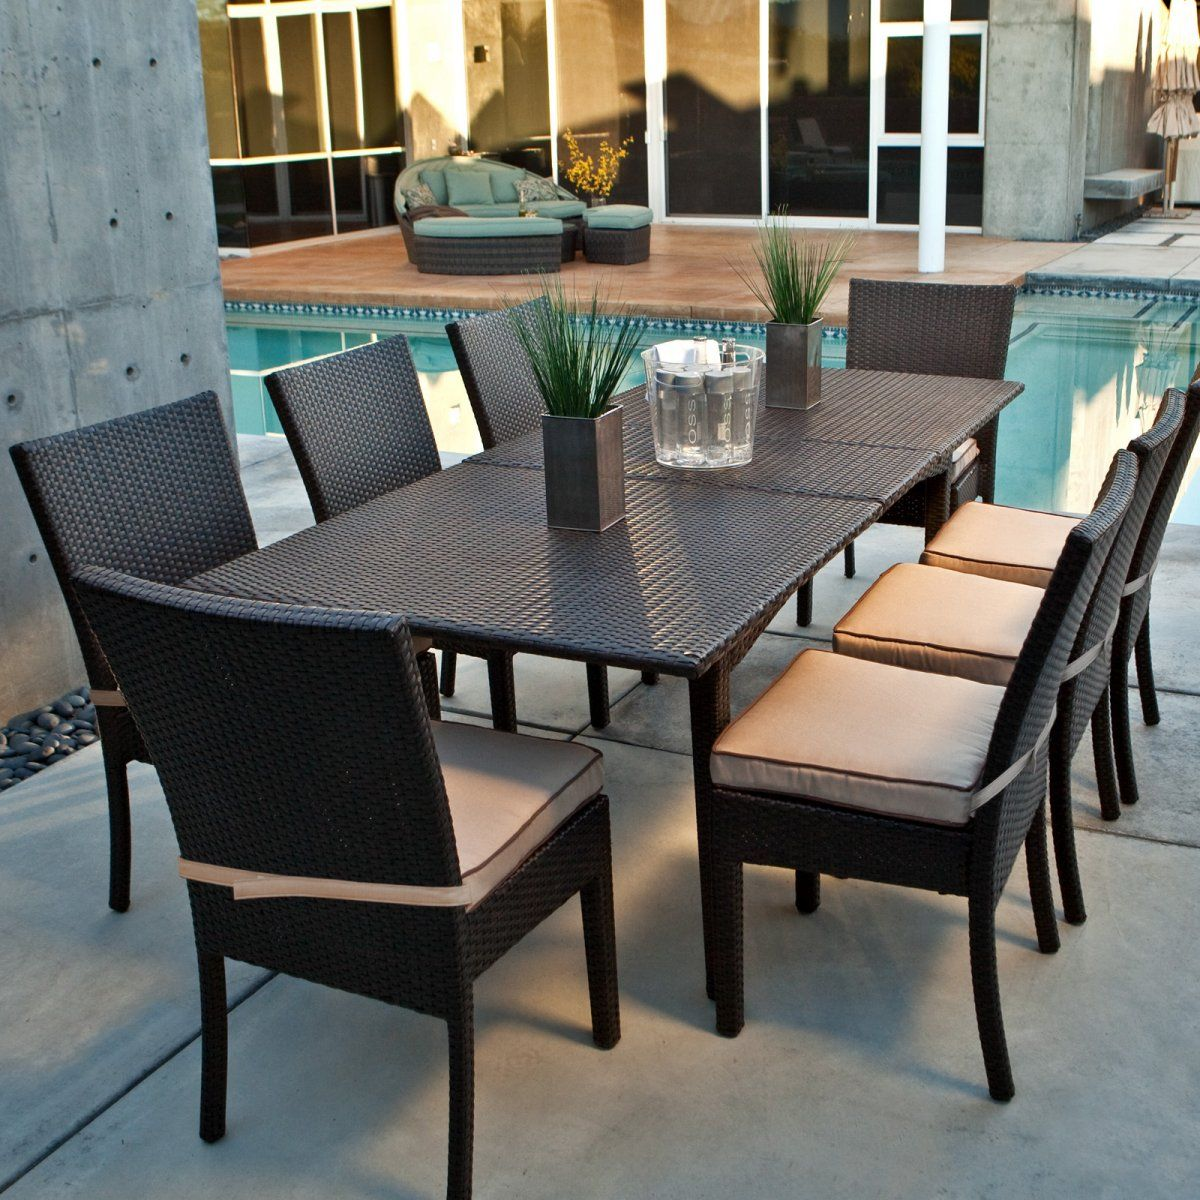 Modern Outdoor Dining Furniture Outdoor Dining Pinterest